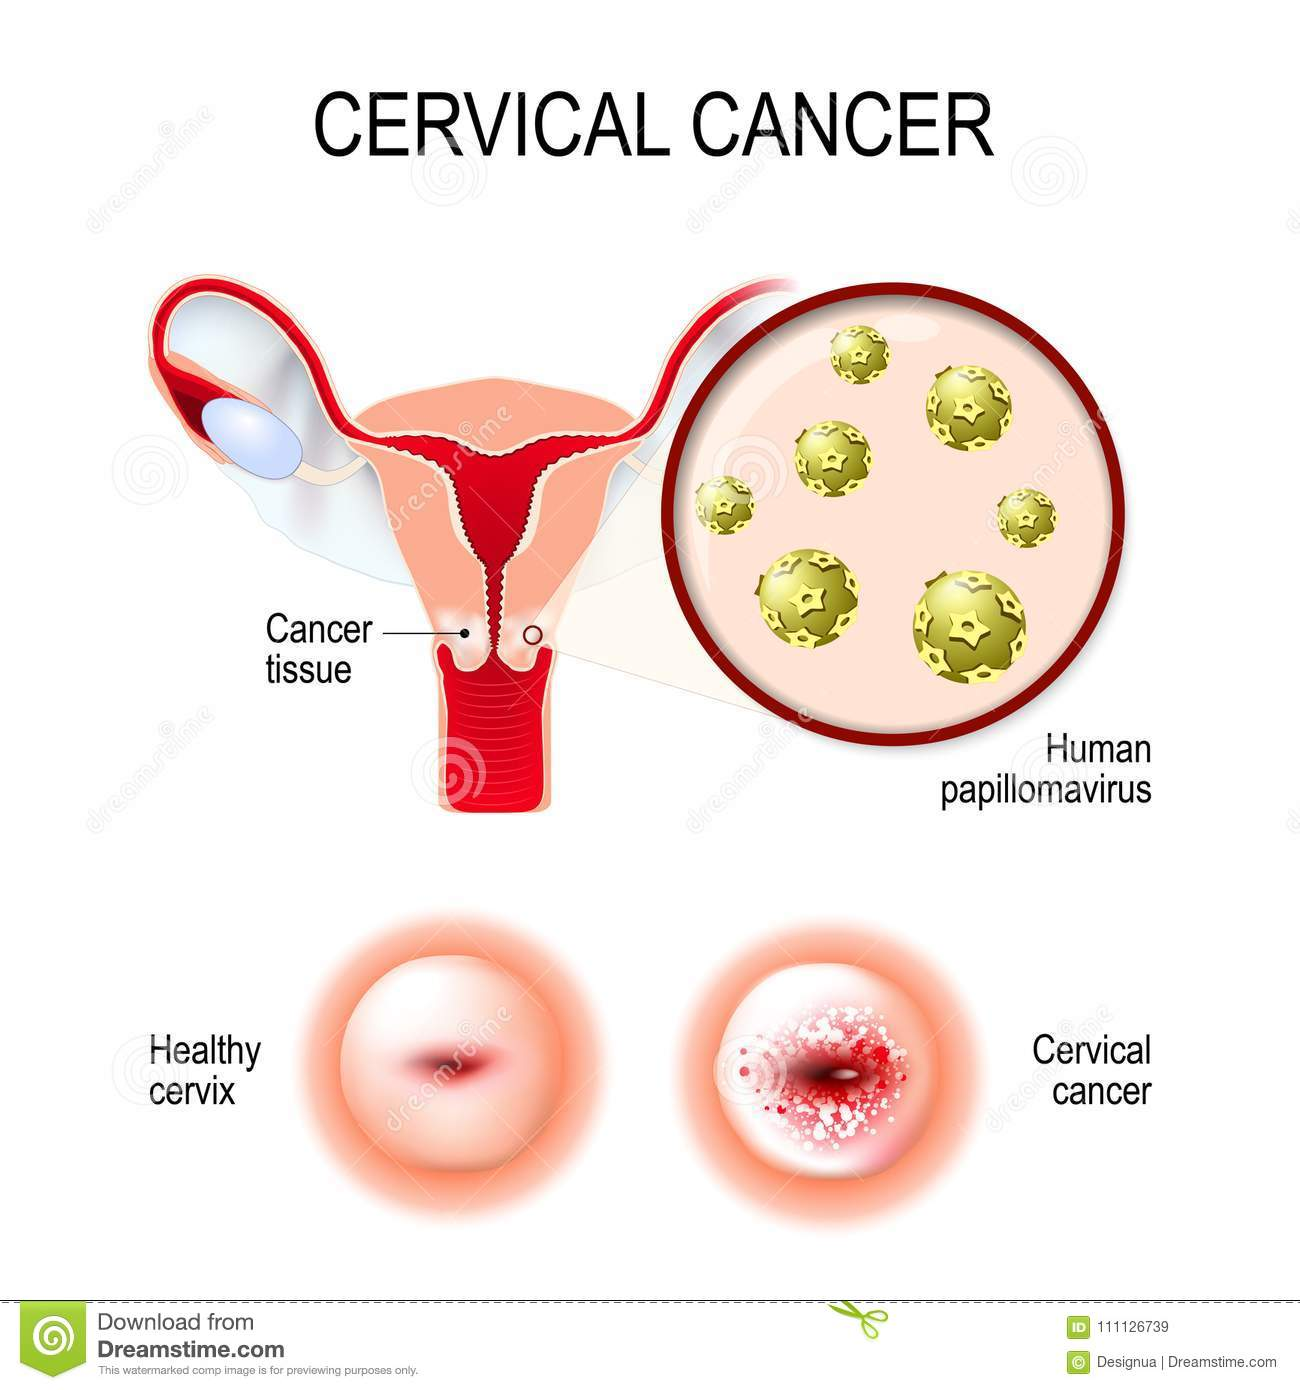 [Cervugid ovules in cervico-vaginal infections and cervix uteri precancerous conditions treatment]